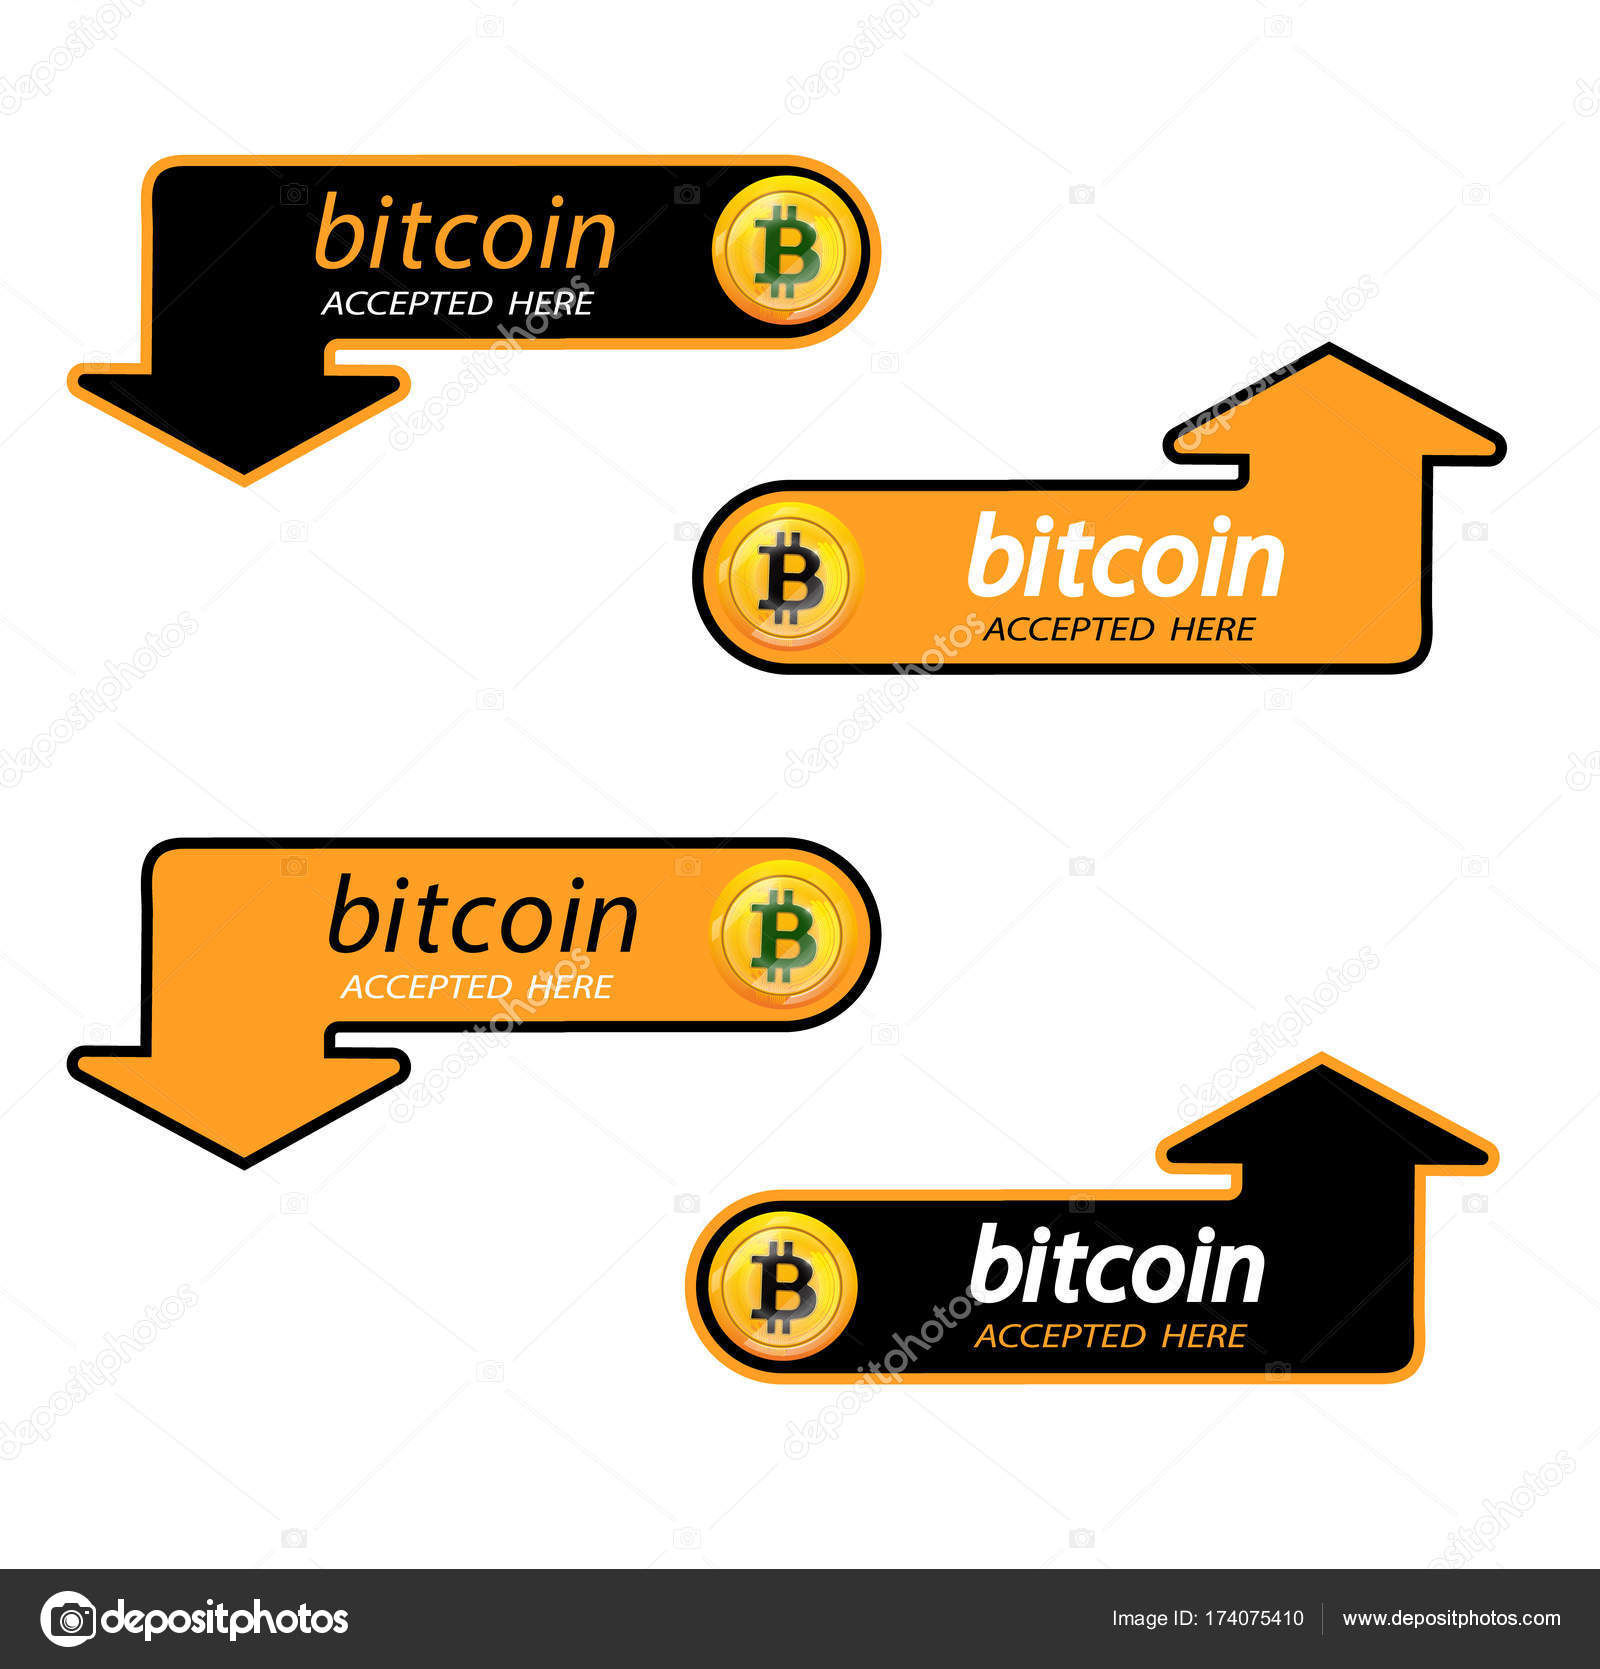 Bitcoin Logo Of Crypto Currency With An Inscription Accepted Here On A Black Background Block Sticker For Slabbarking Organizations For Web Pages Or Printing Logo Bitcoins Vector Illustration Vector Image By C